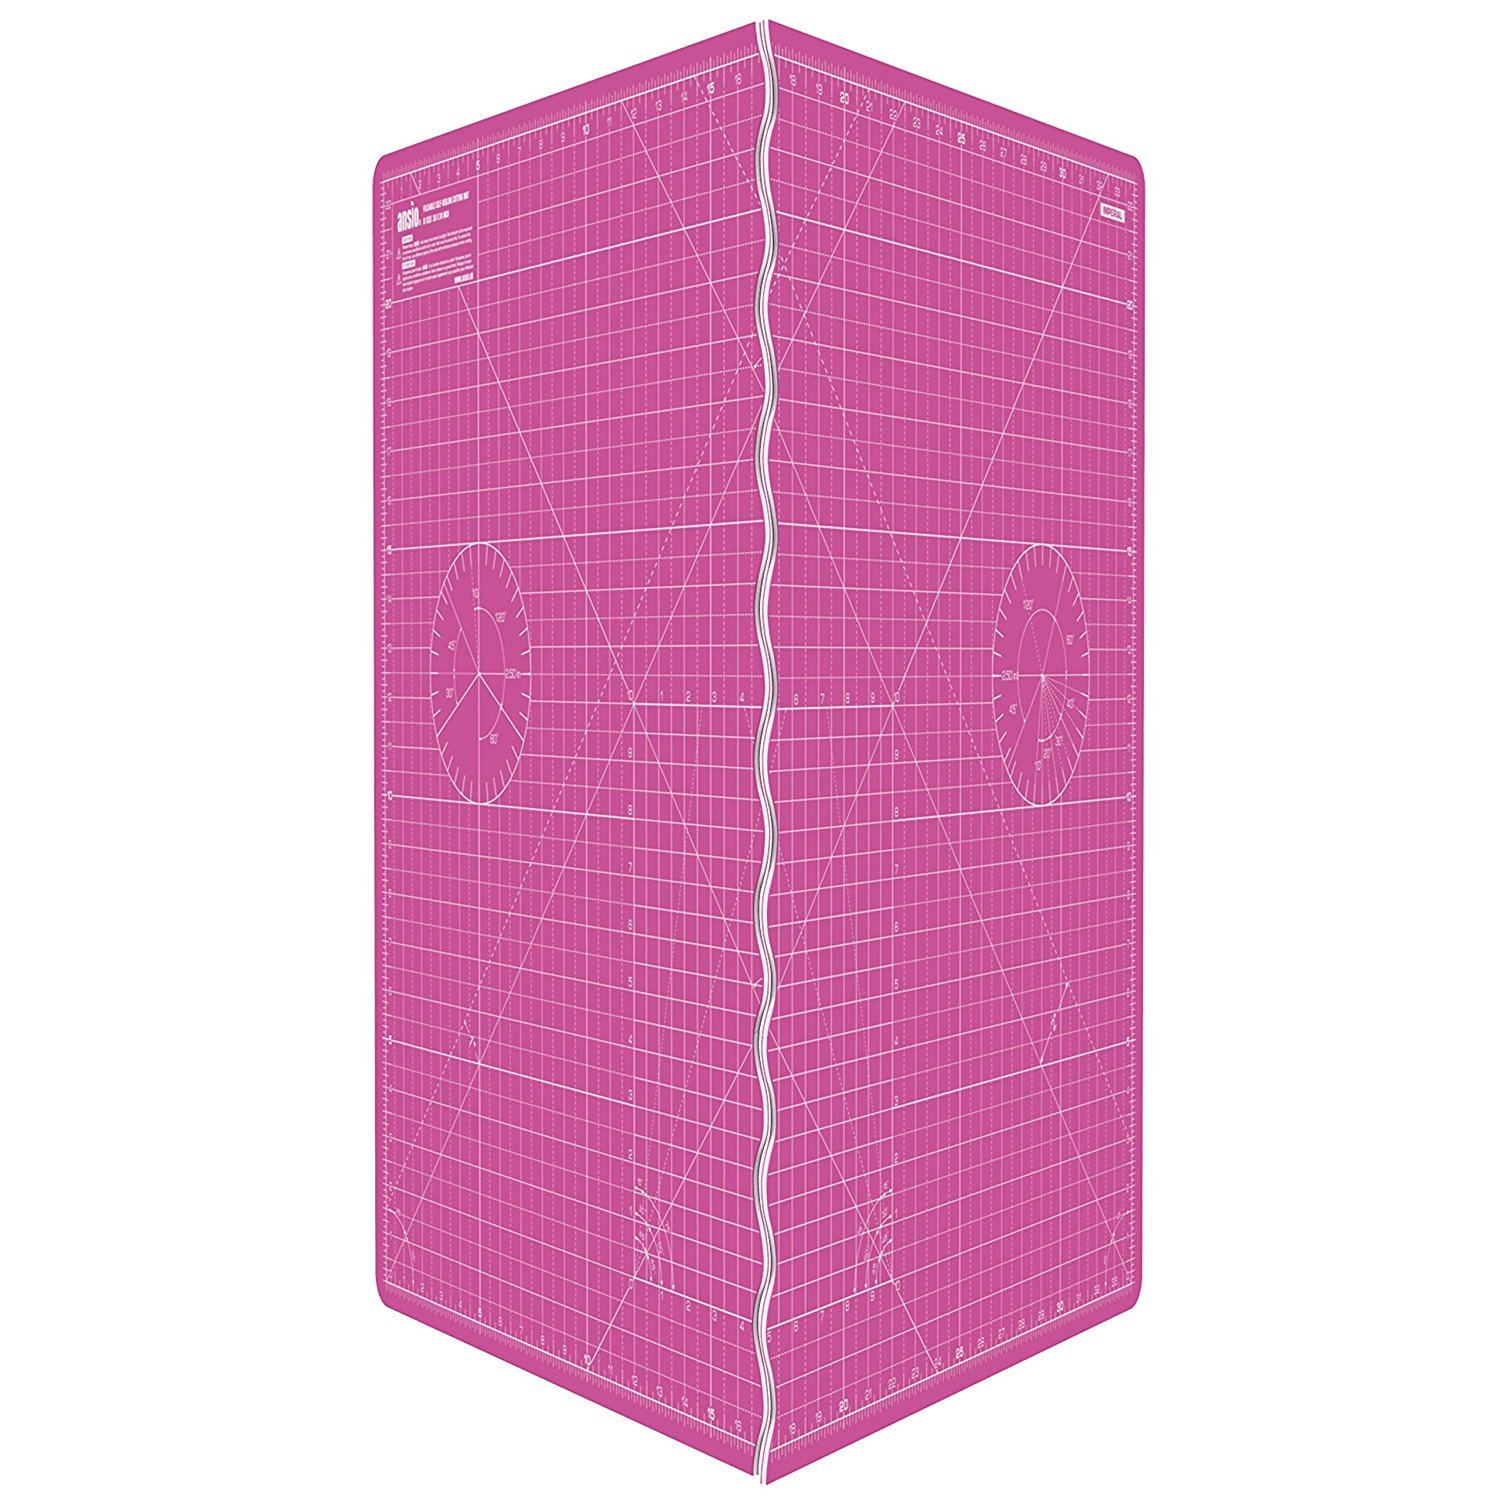 ANSIO A1 Foldable Self Healing Cutting Mat Imperial 34 inch x 22.5 inch - Pink